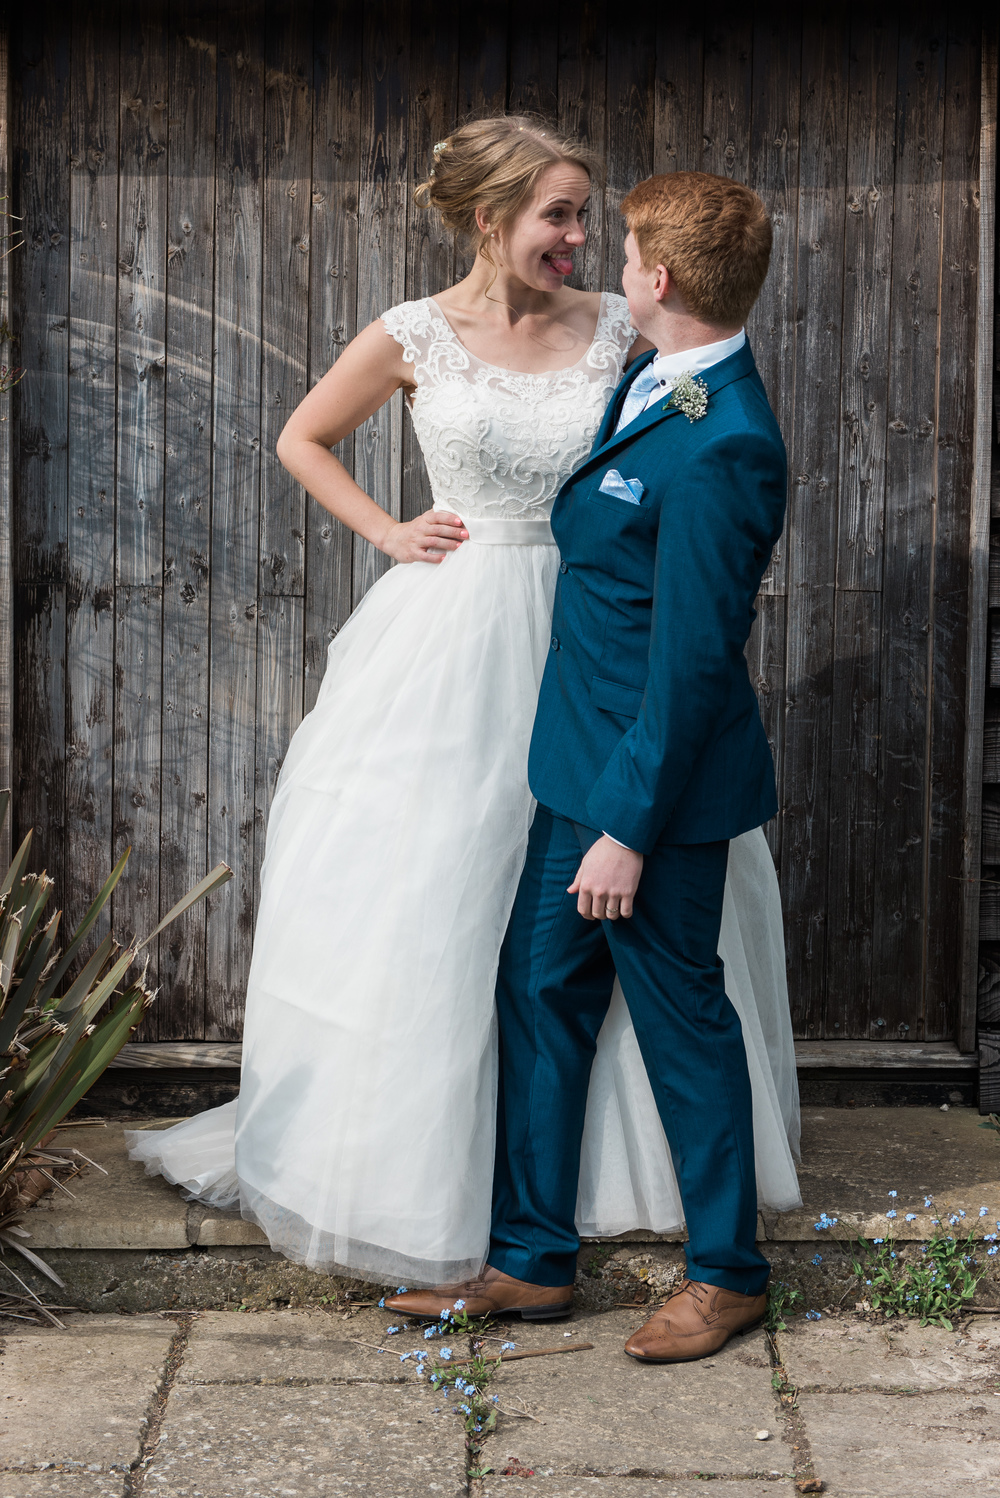 Rianne and Callum - Saturday 30th April